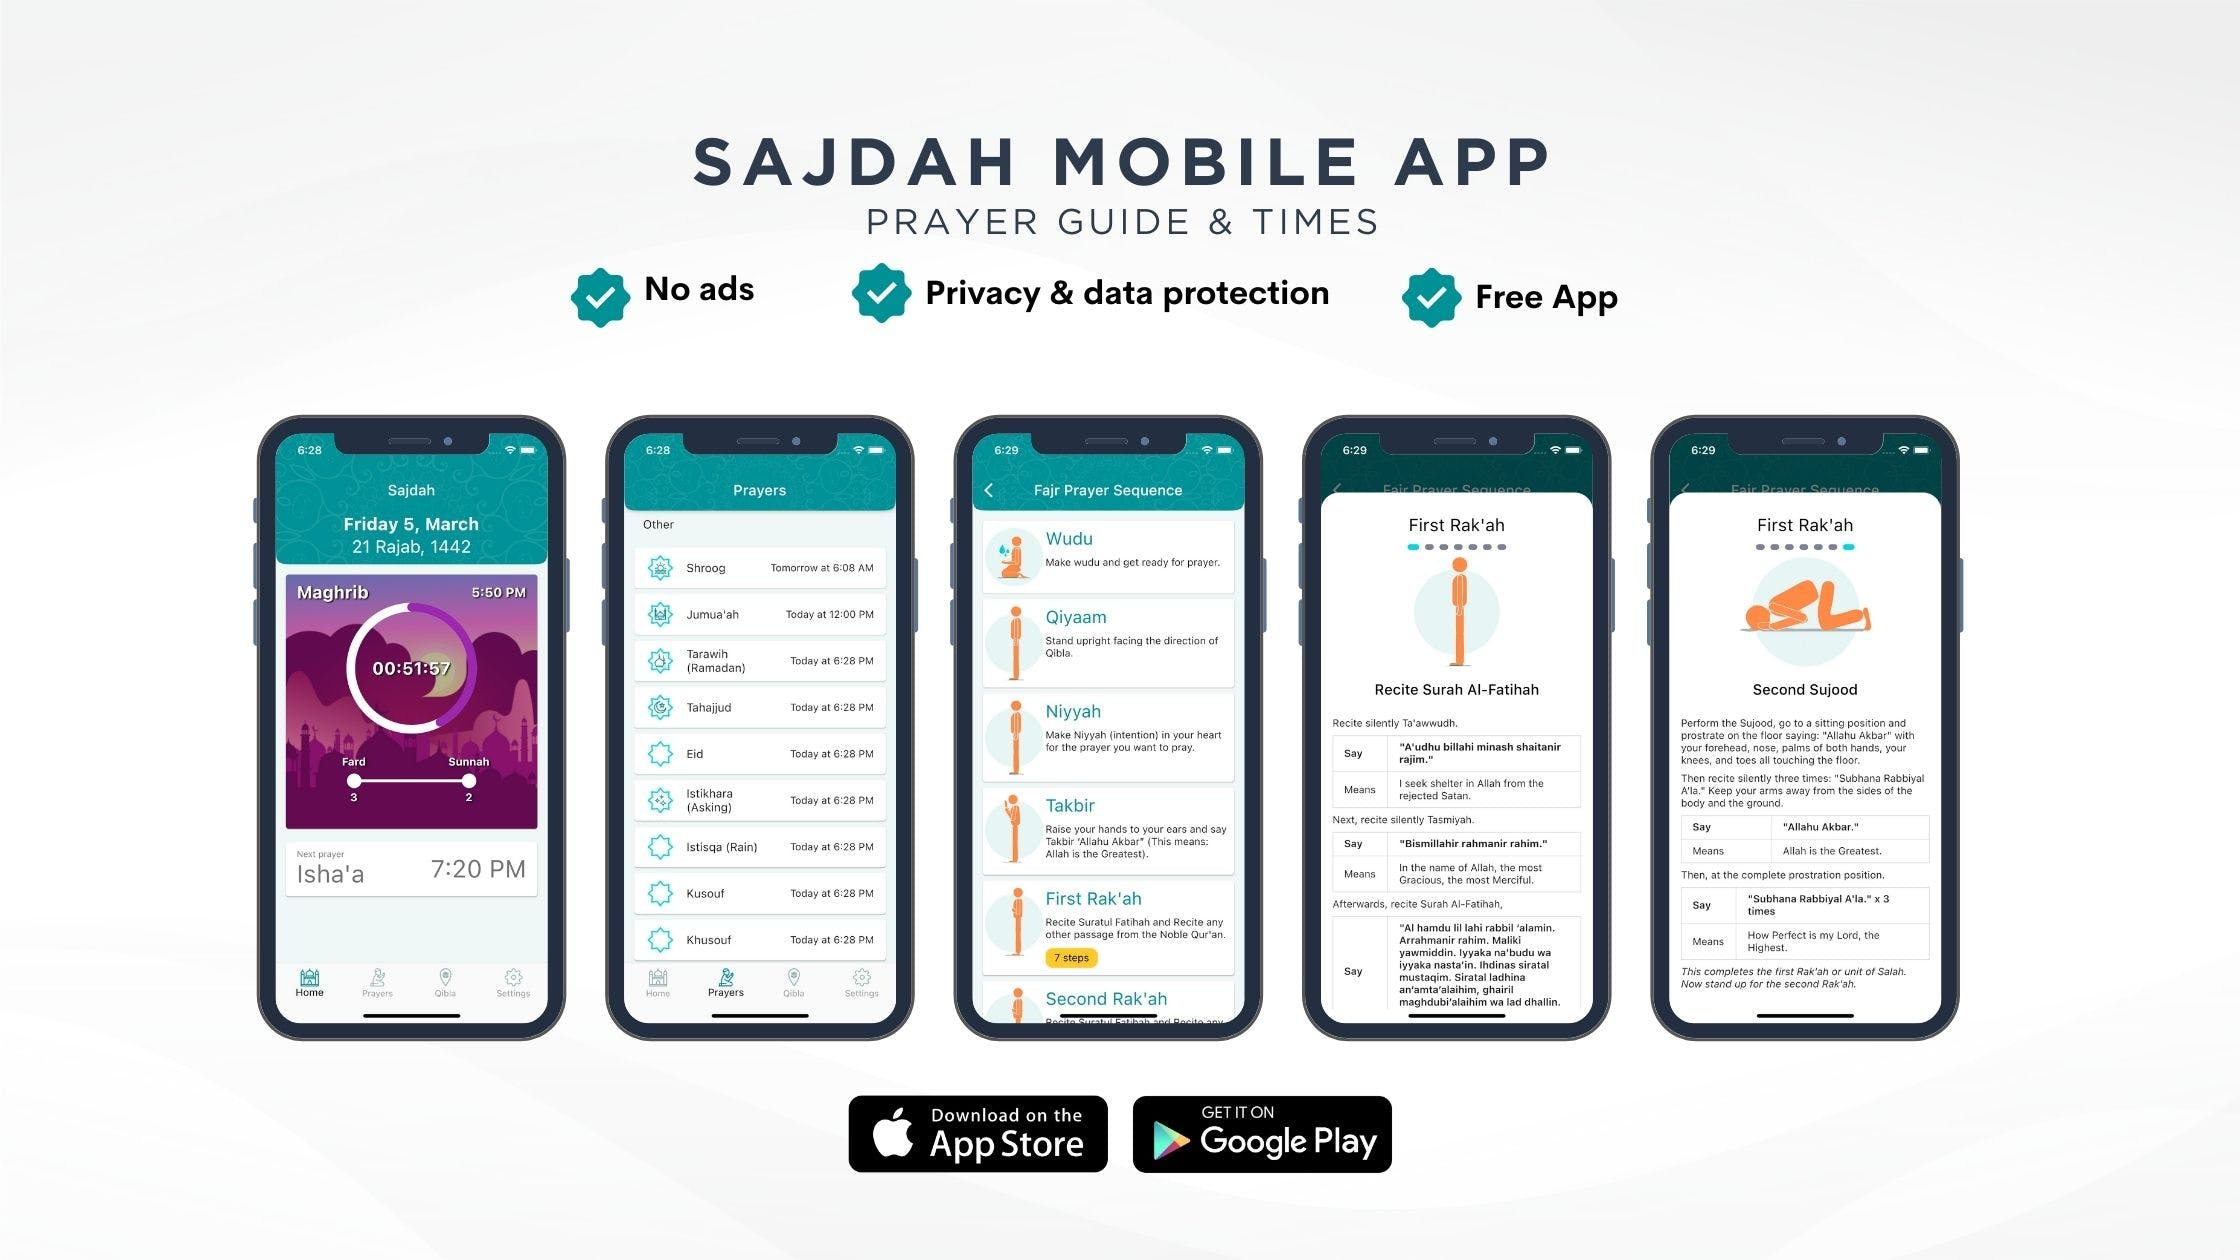 sajdah-mobile-app--prayer-guide-and-times-for-every-muslim